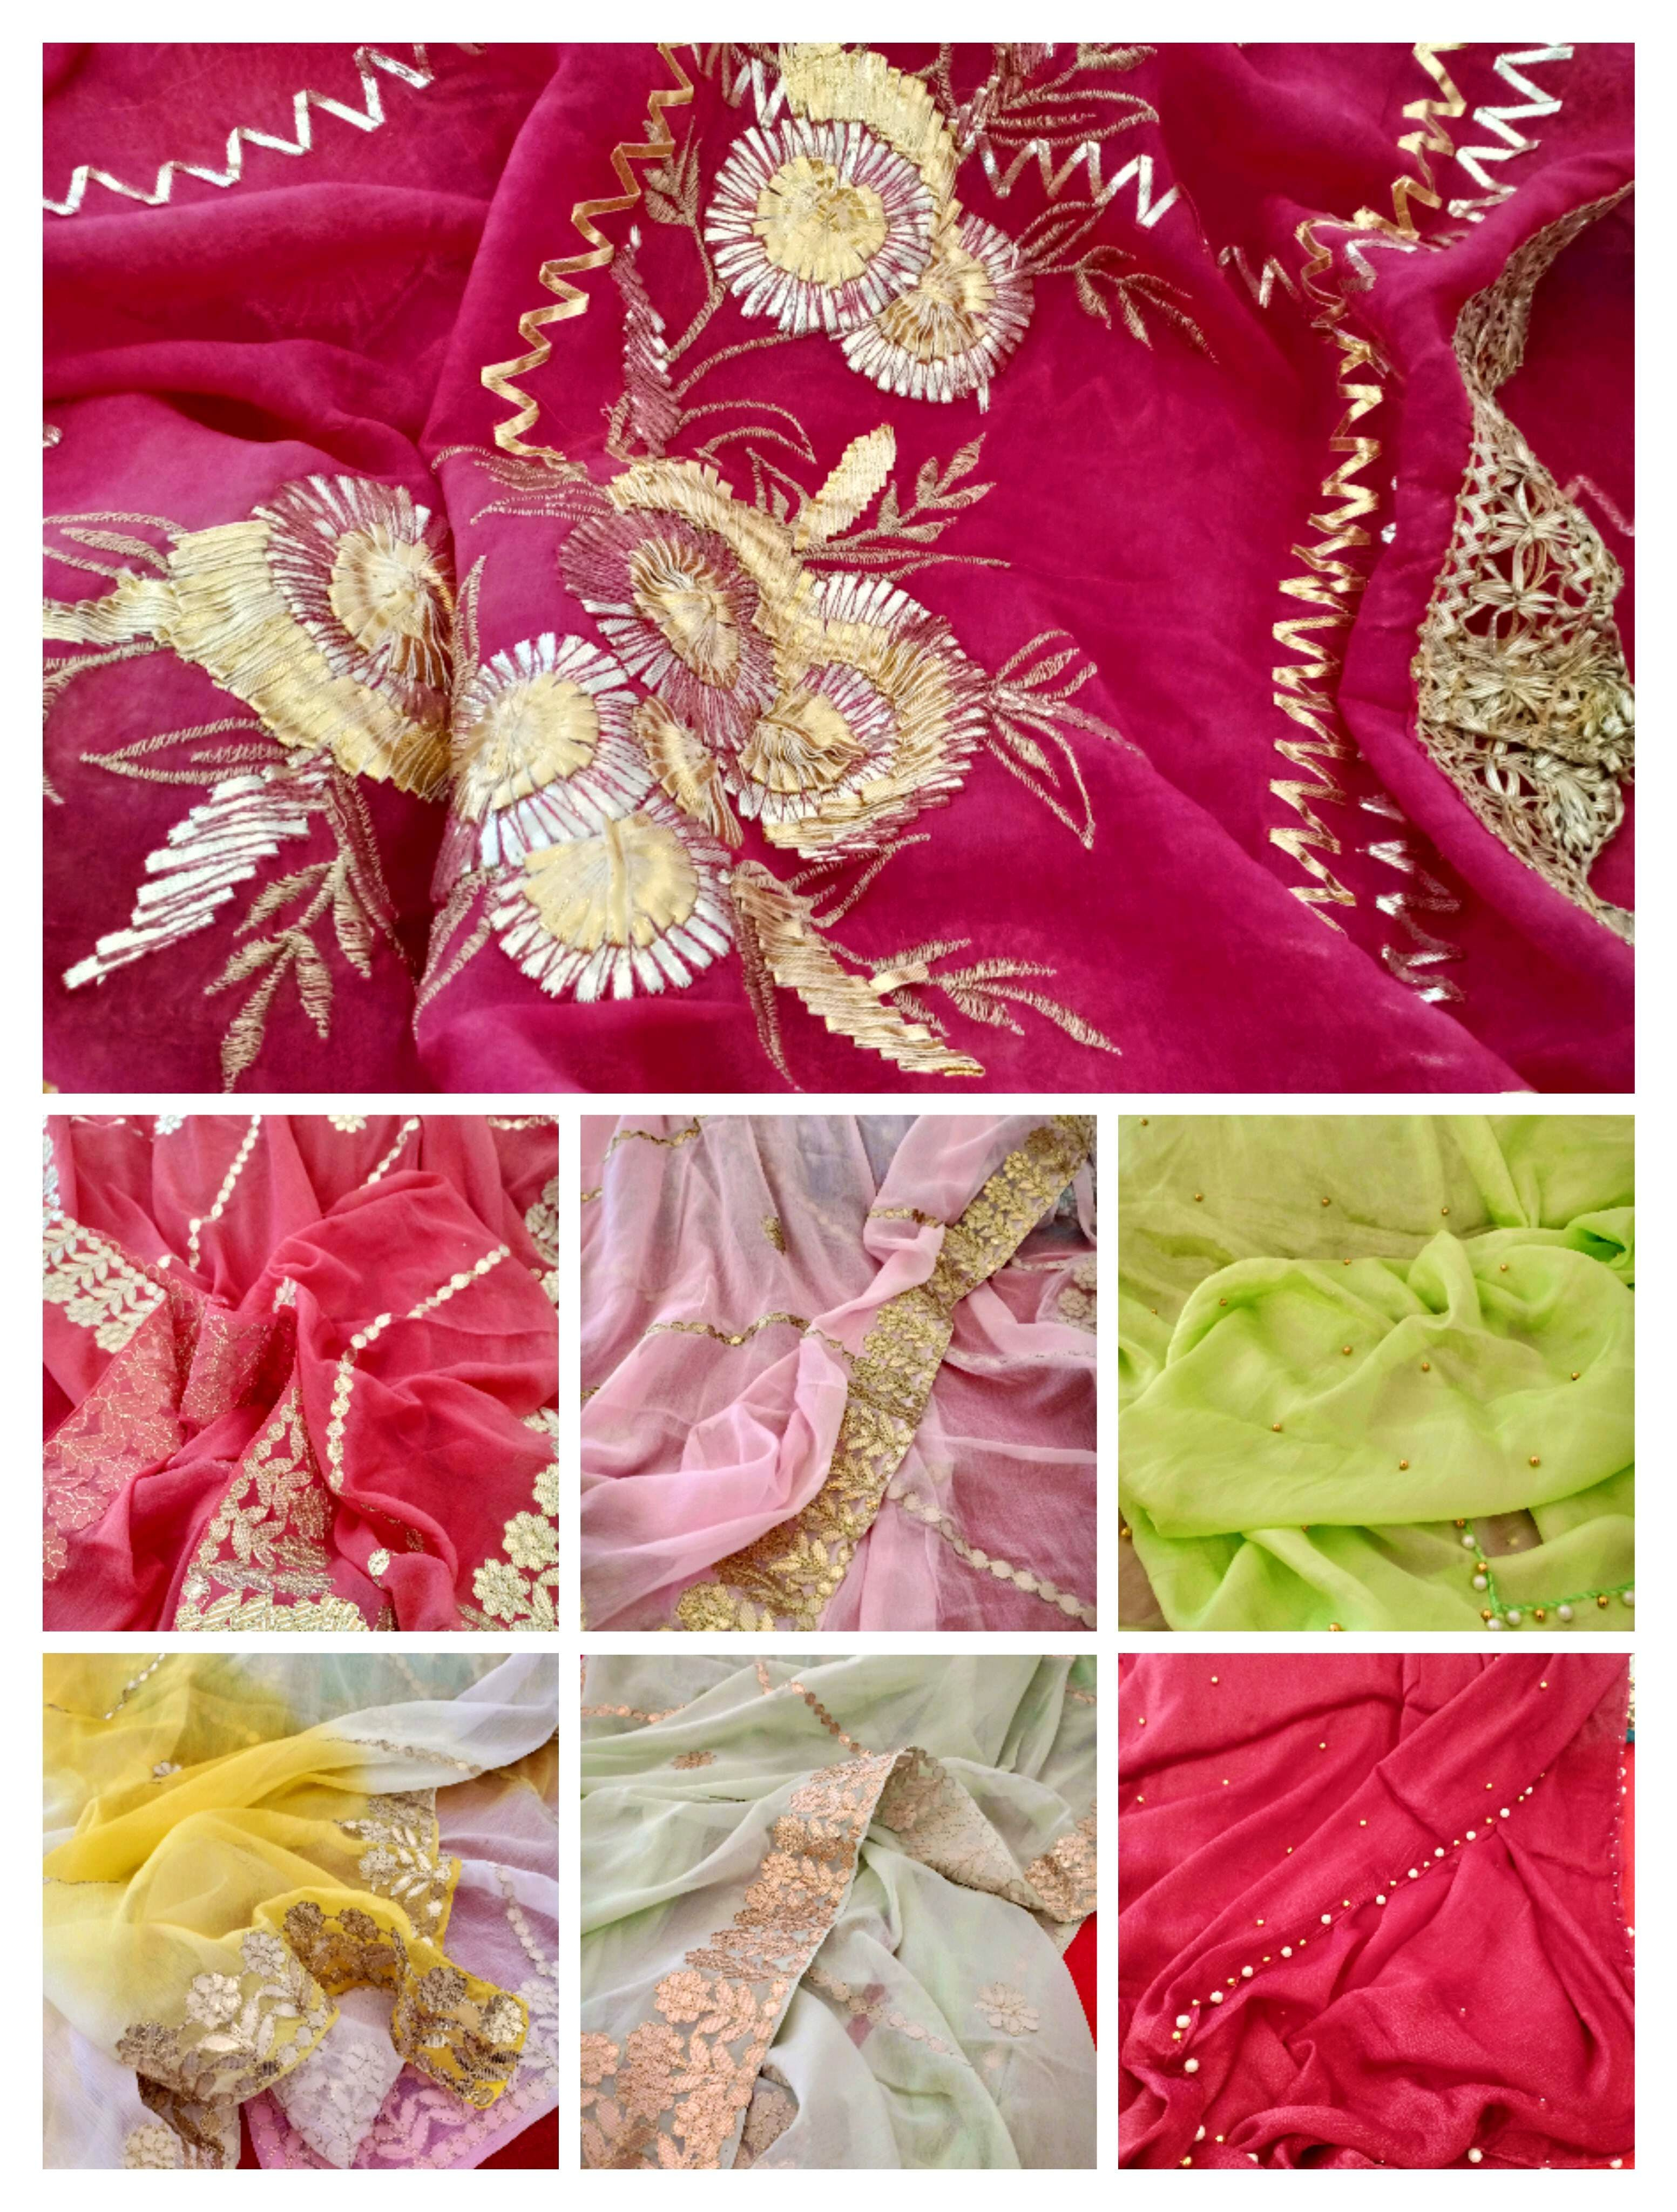 Pink,Textile,Lace,Magenta